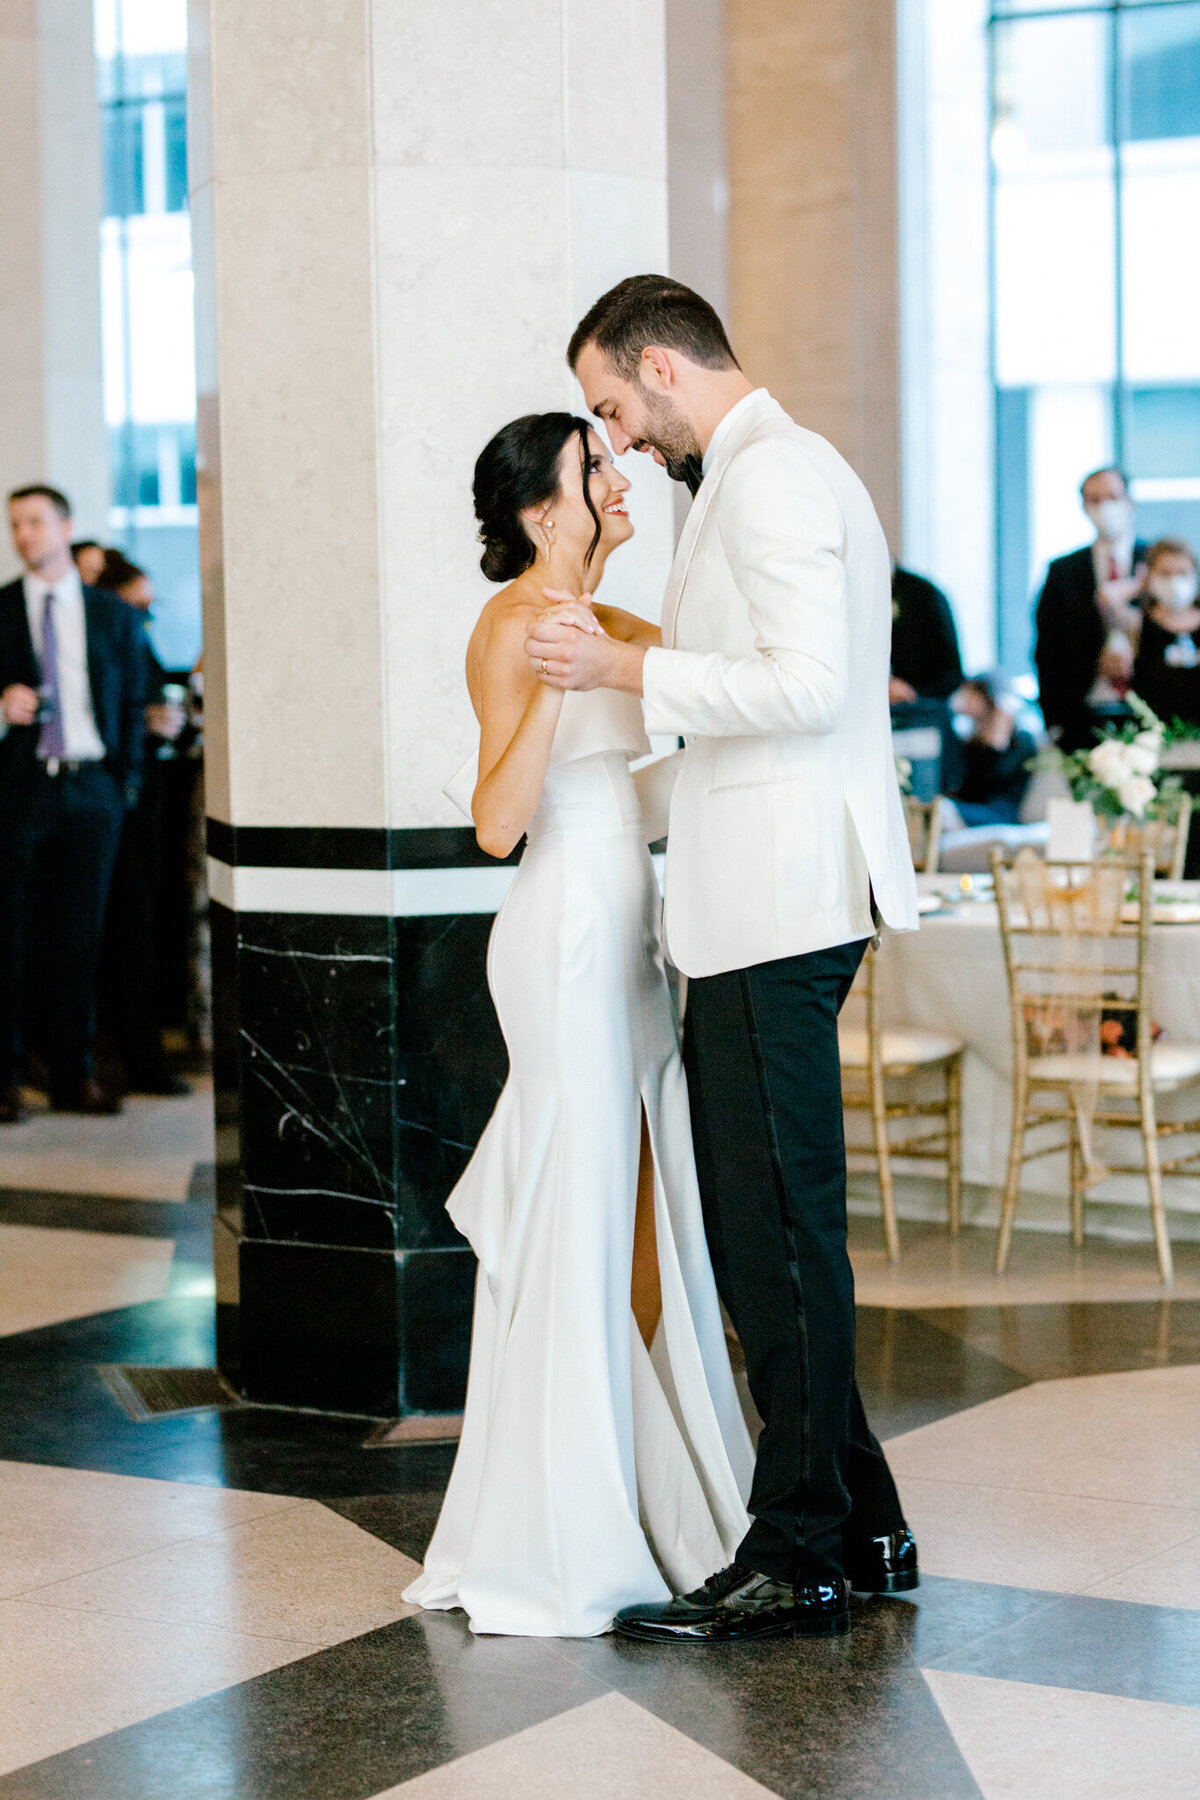 Hope & Zack's Wedding at the Carlisle Room | Dallas Wedding Photographer | Sami Kathryn Photography-110